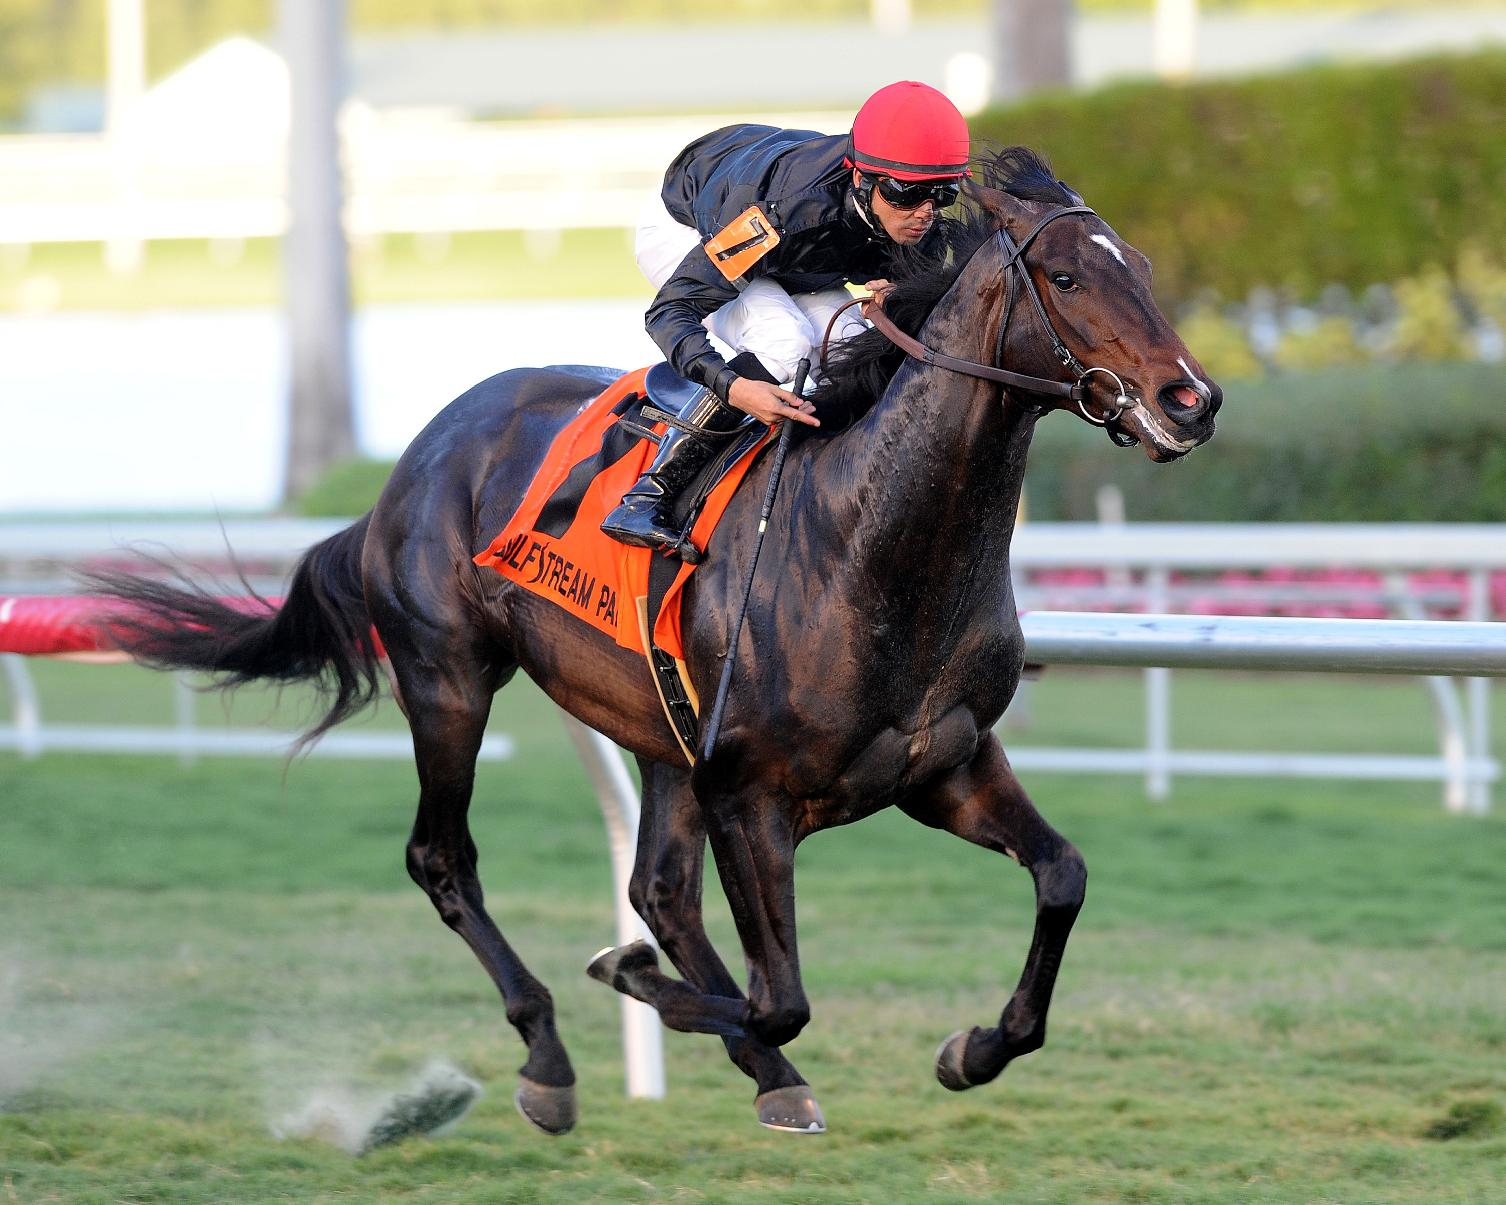 In this photo provided by Gulfstream Park, Mr. Speaker, with Jose Lezcano aboard, captures the Dania Beach Stakes horse race at Gulfstream Park in Hallandale Beach, Fla., Saturday, Dec. 21, 2013